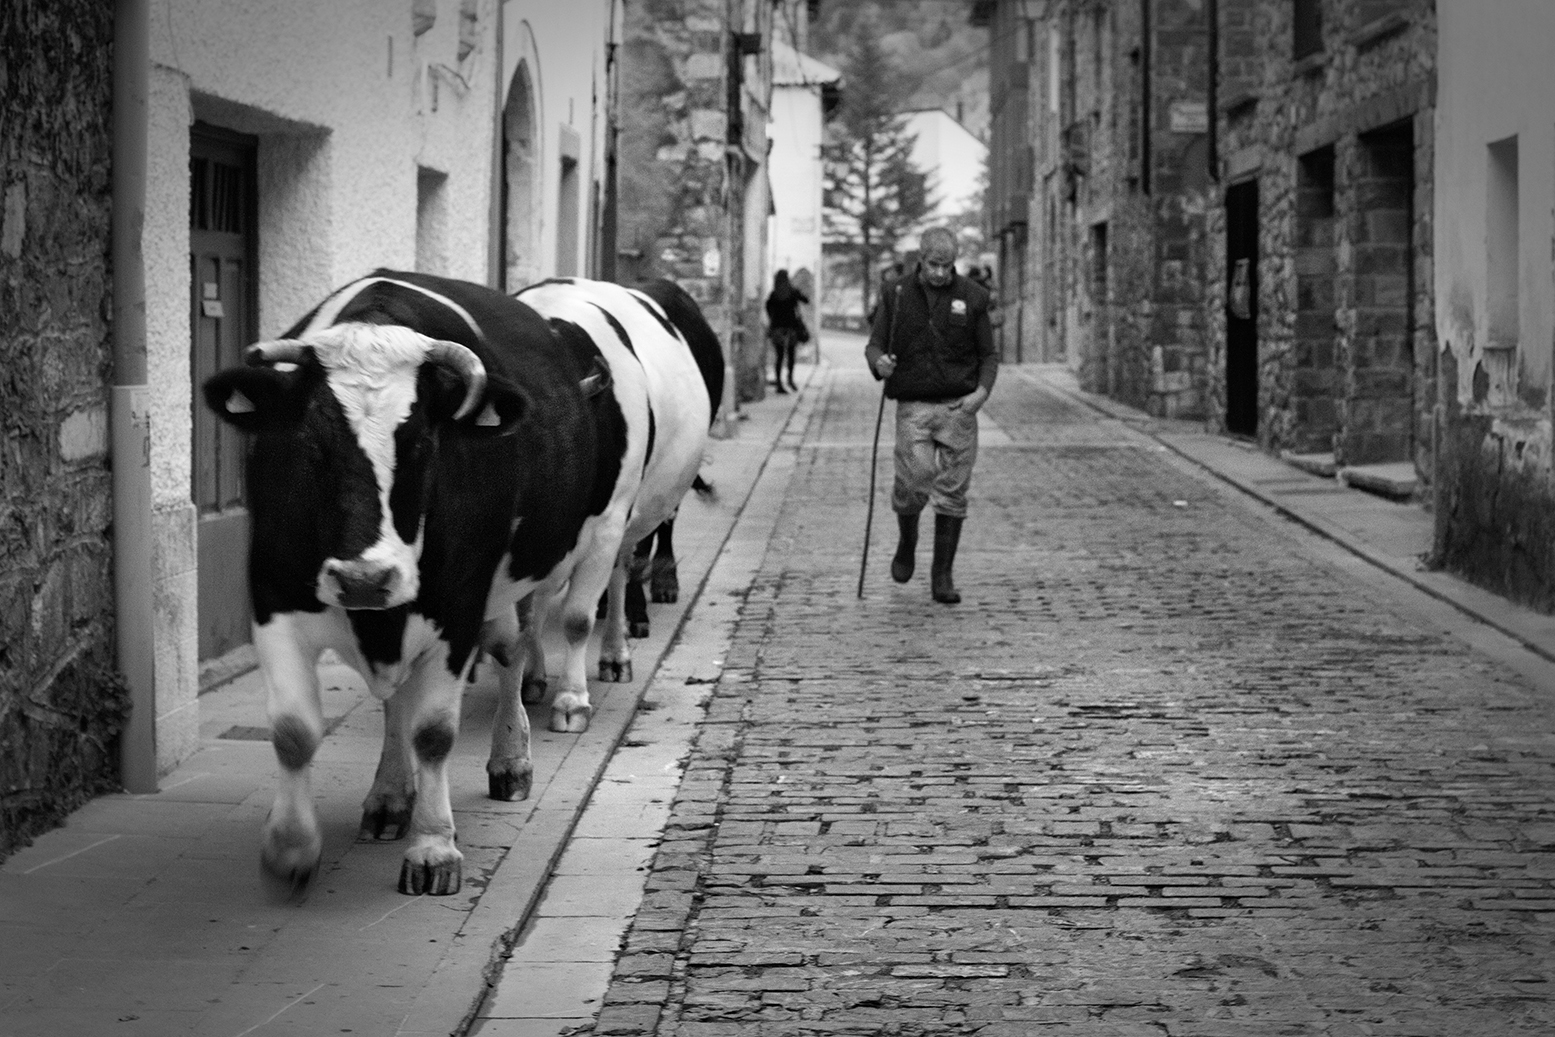 Polite cows: a herd of cows crosses the streets of Canfranc, followed by the cowherd.